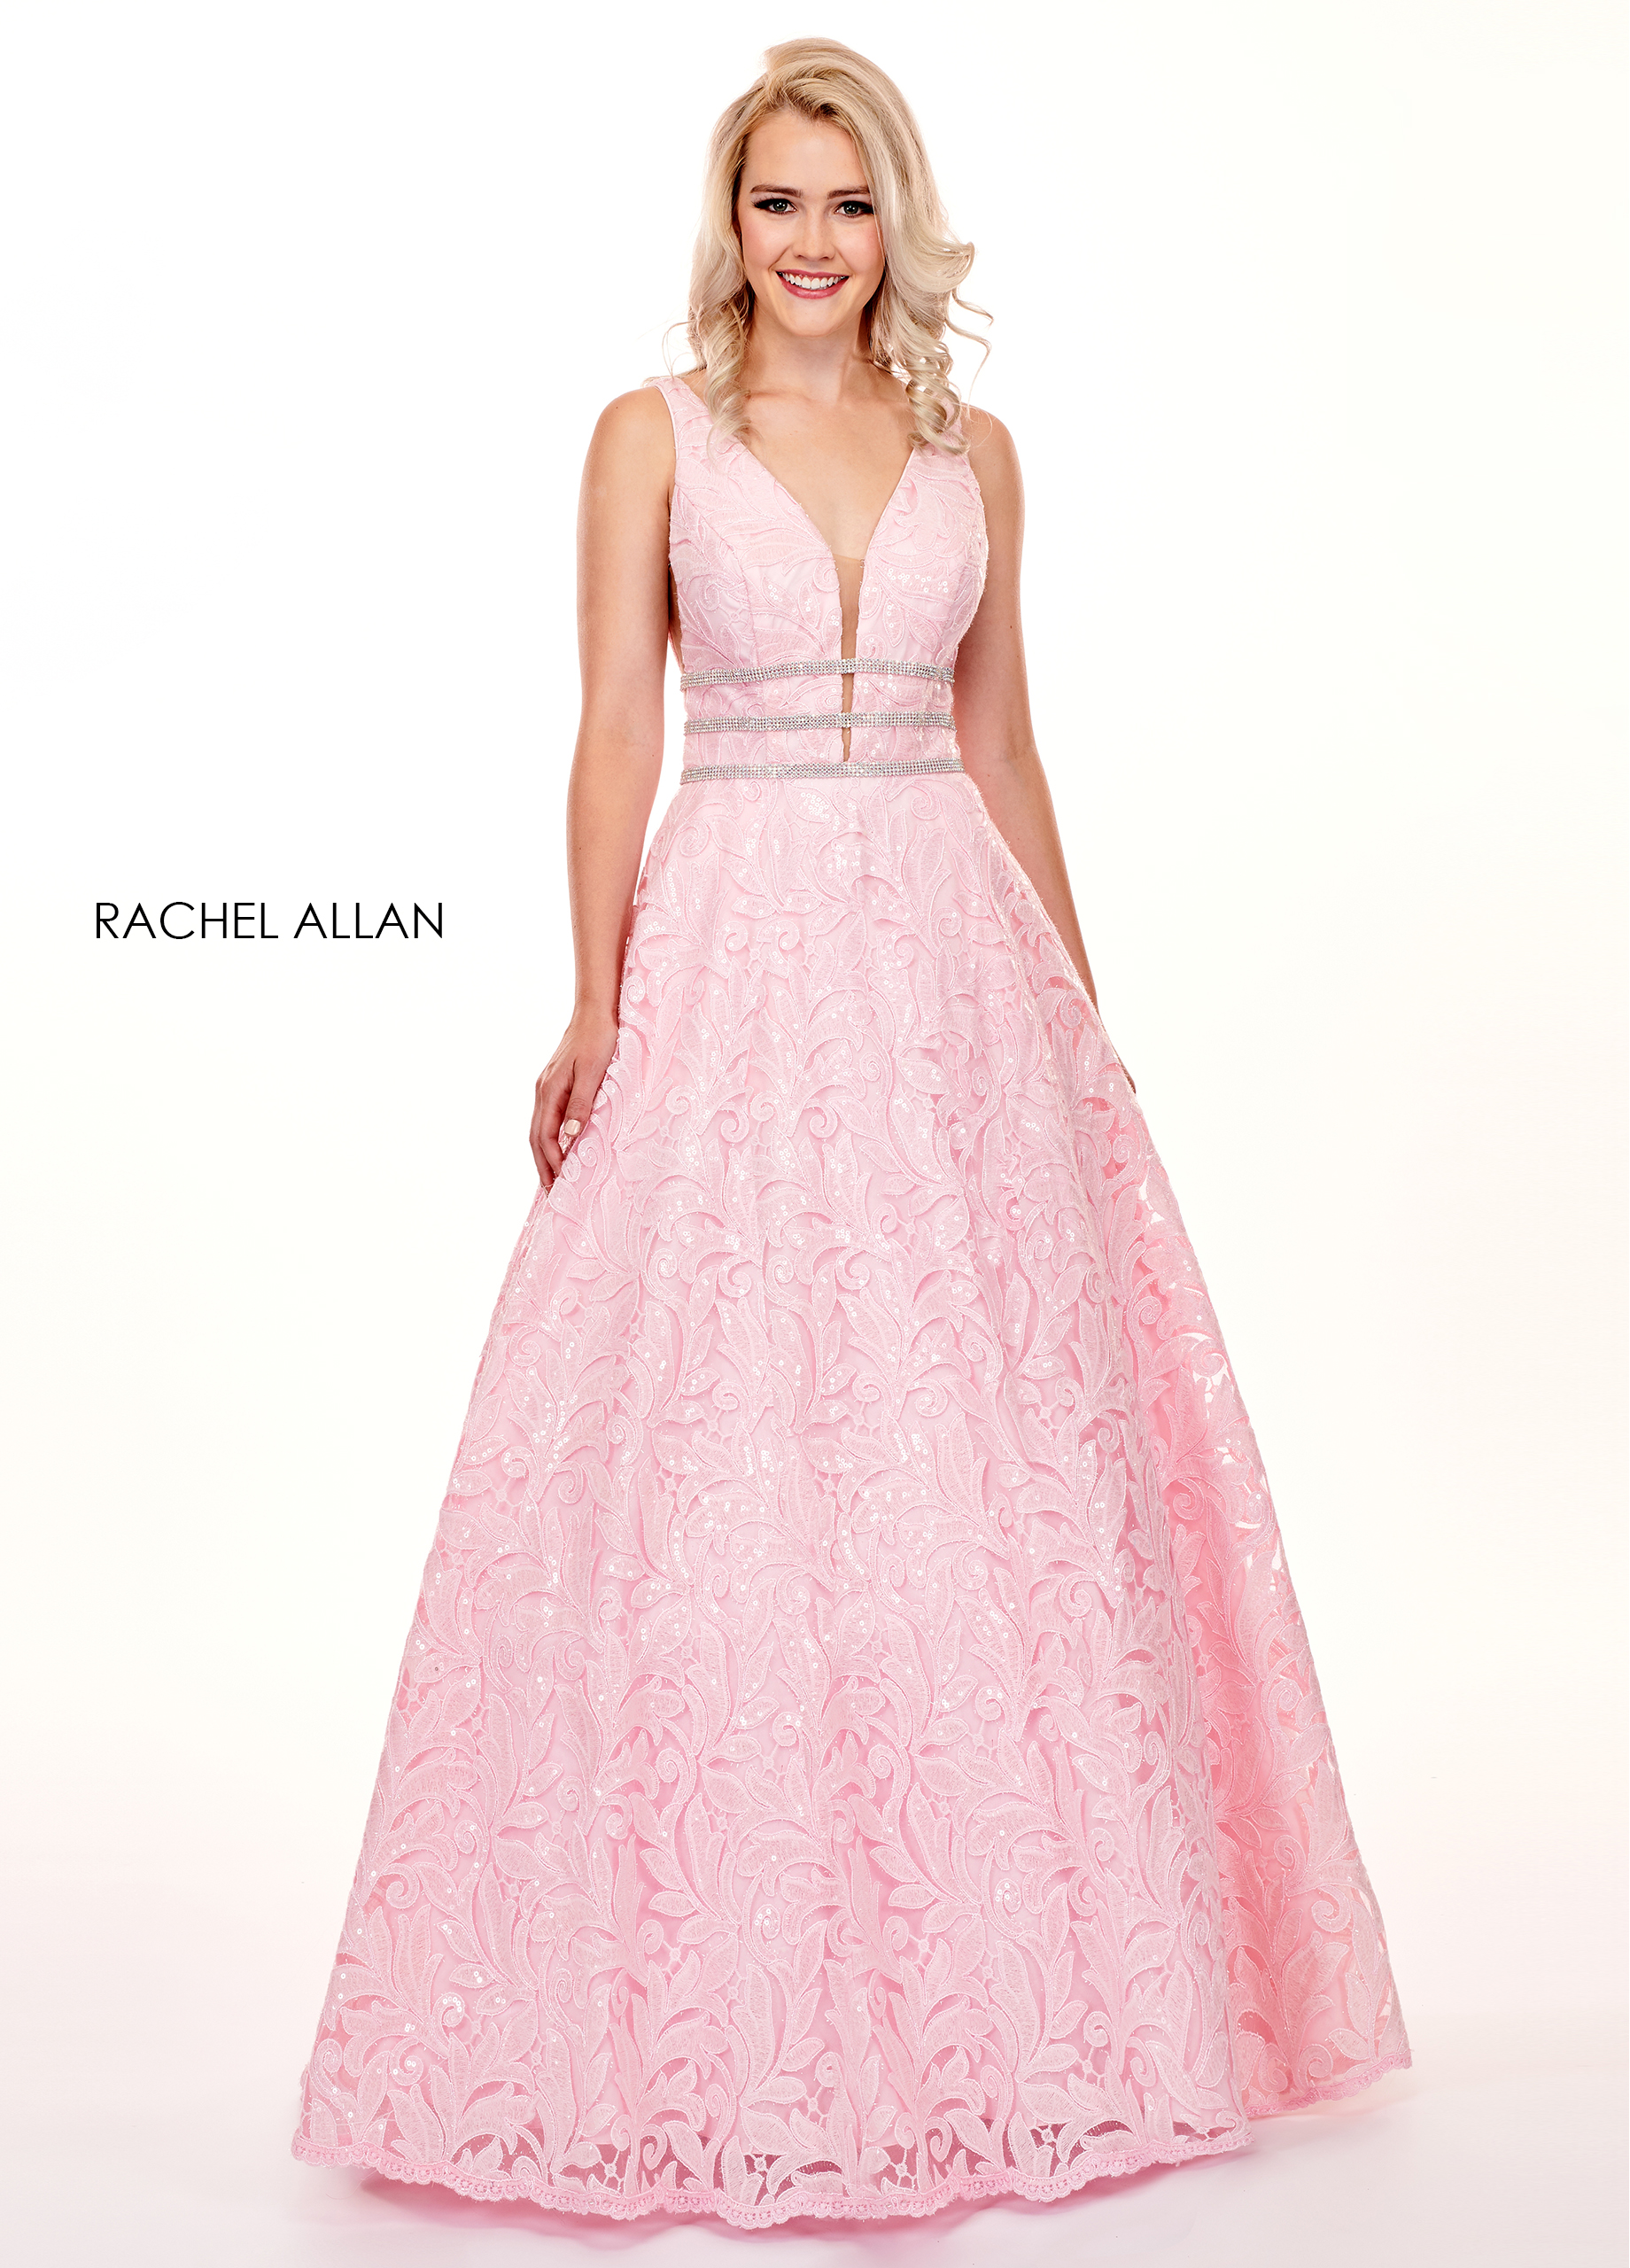 V-Neck Ball Gowns Prom Dresses in Pink Color